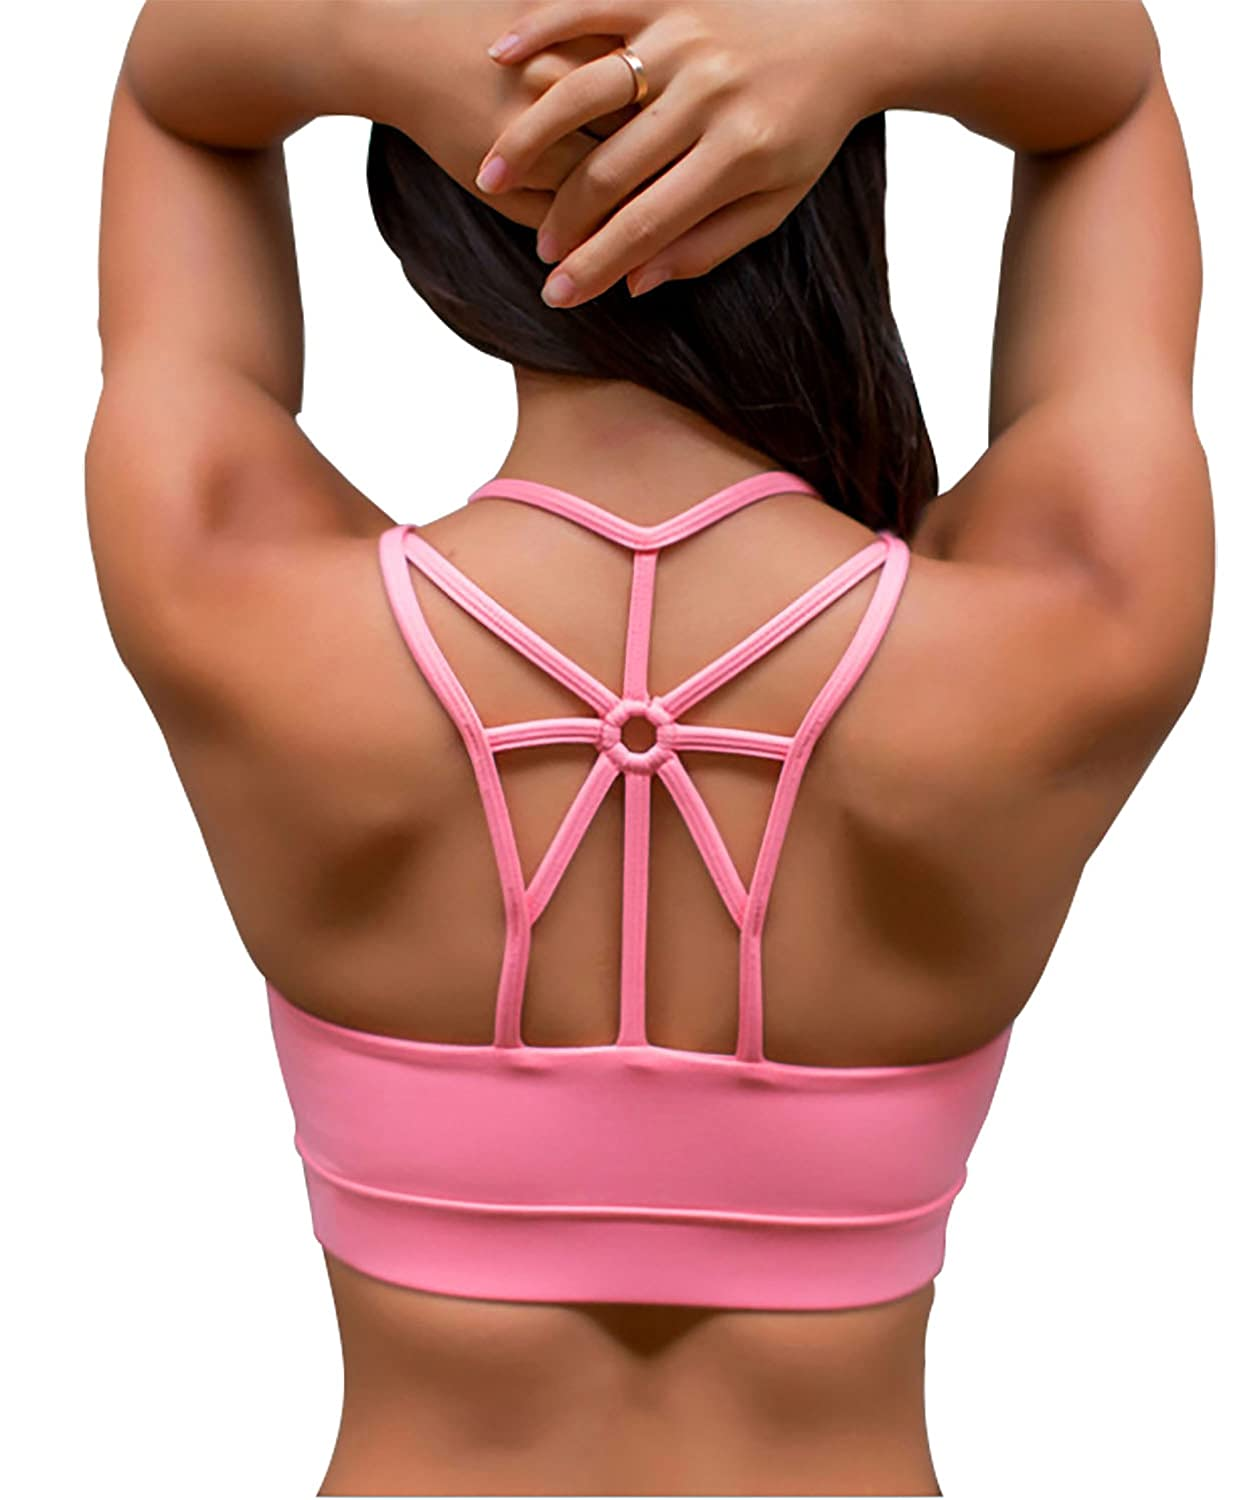 DeepTwist Womens Sports Bra Padded Criss Cross Back Gym Yoga Bras with Removable Cups